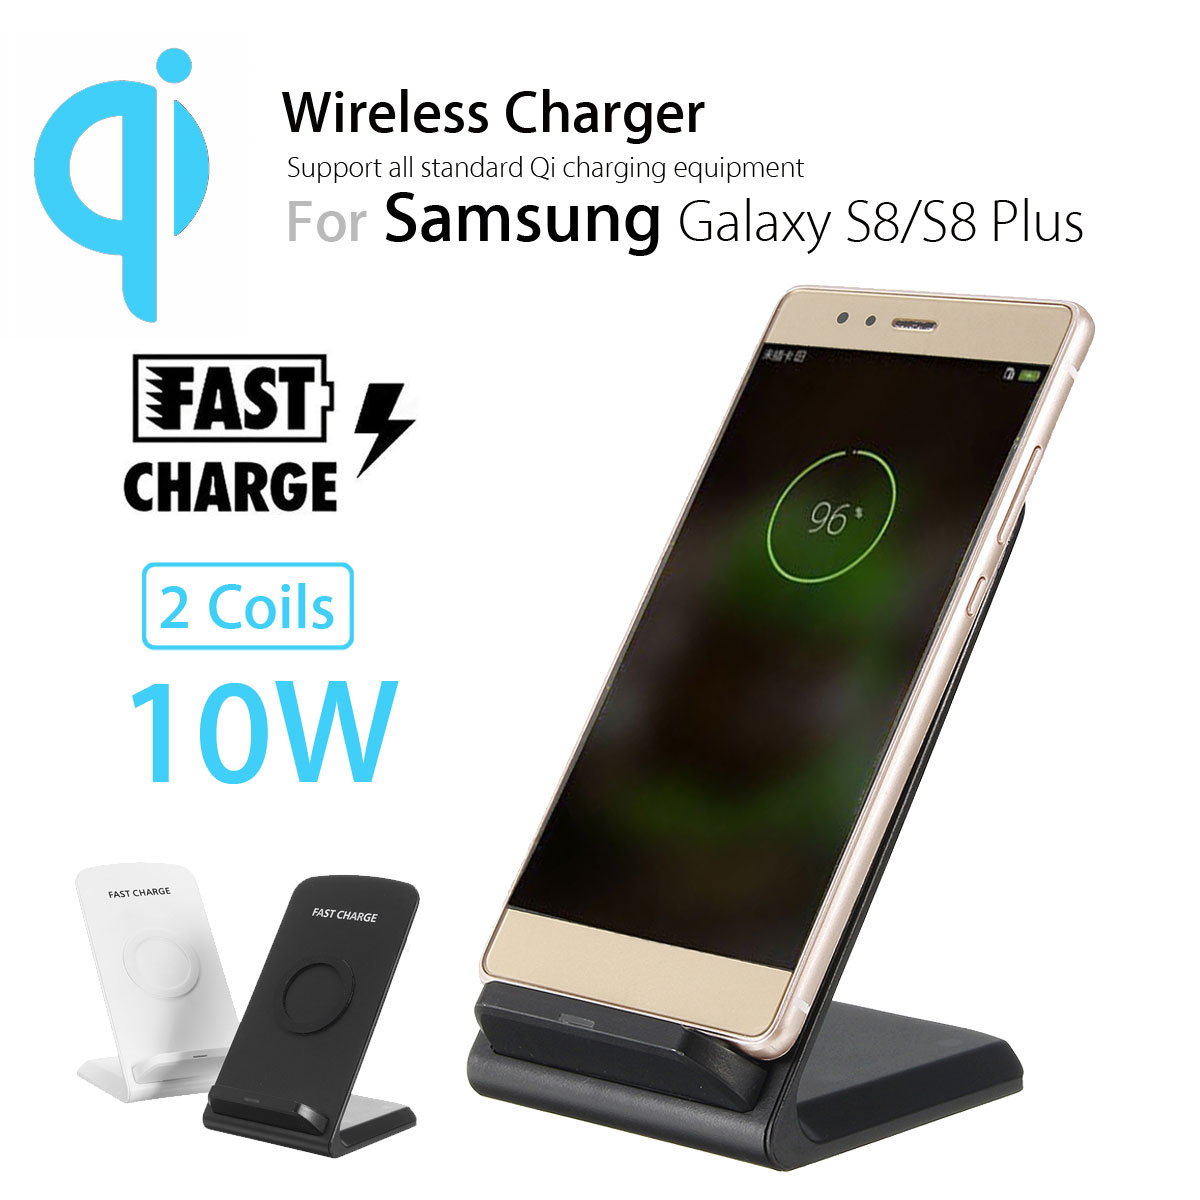 qi wireless fast charge 2 coils 10w desktop charger holder. Black Bedroom Furniture Sets. Home Design Ideas